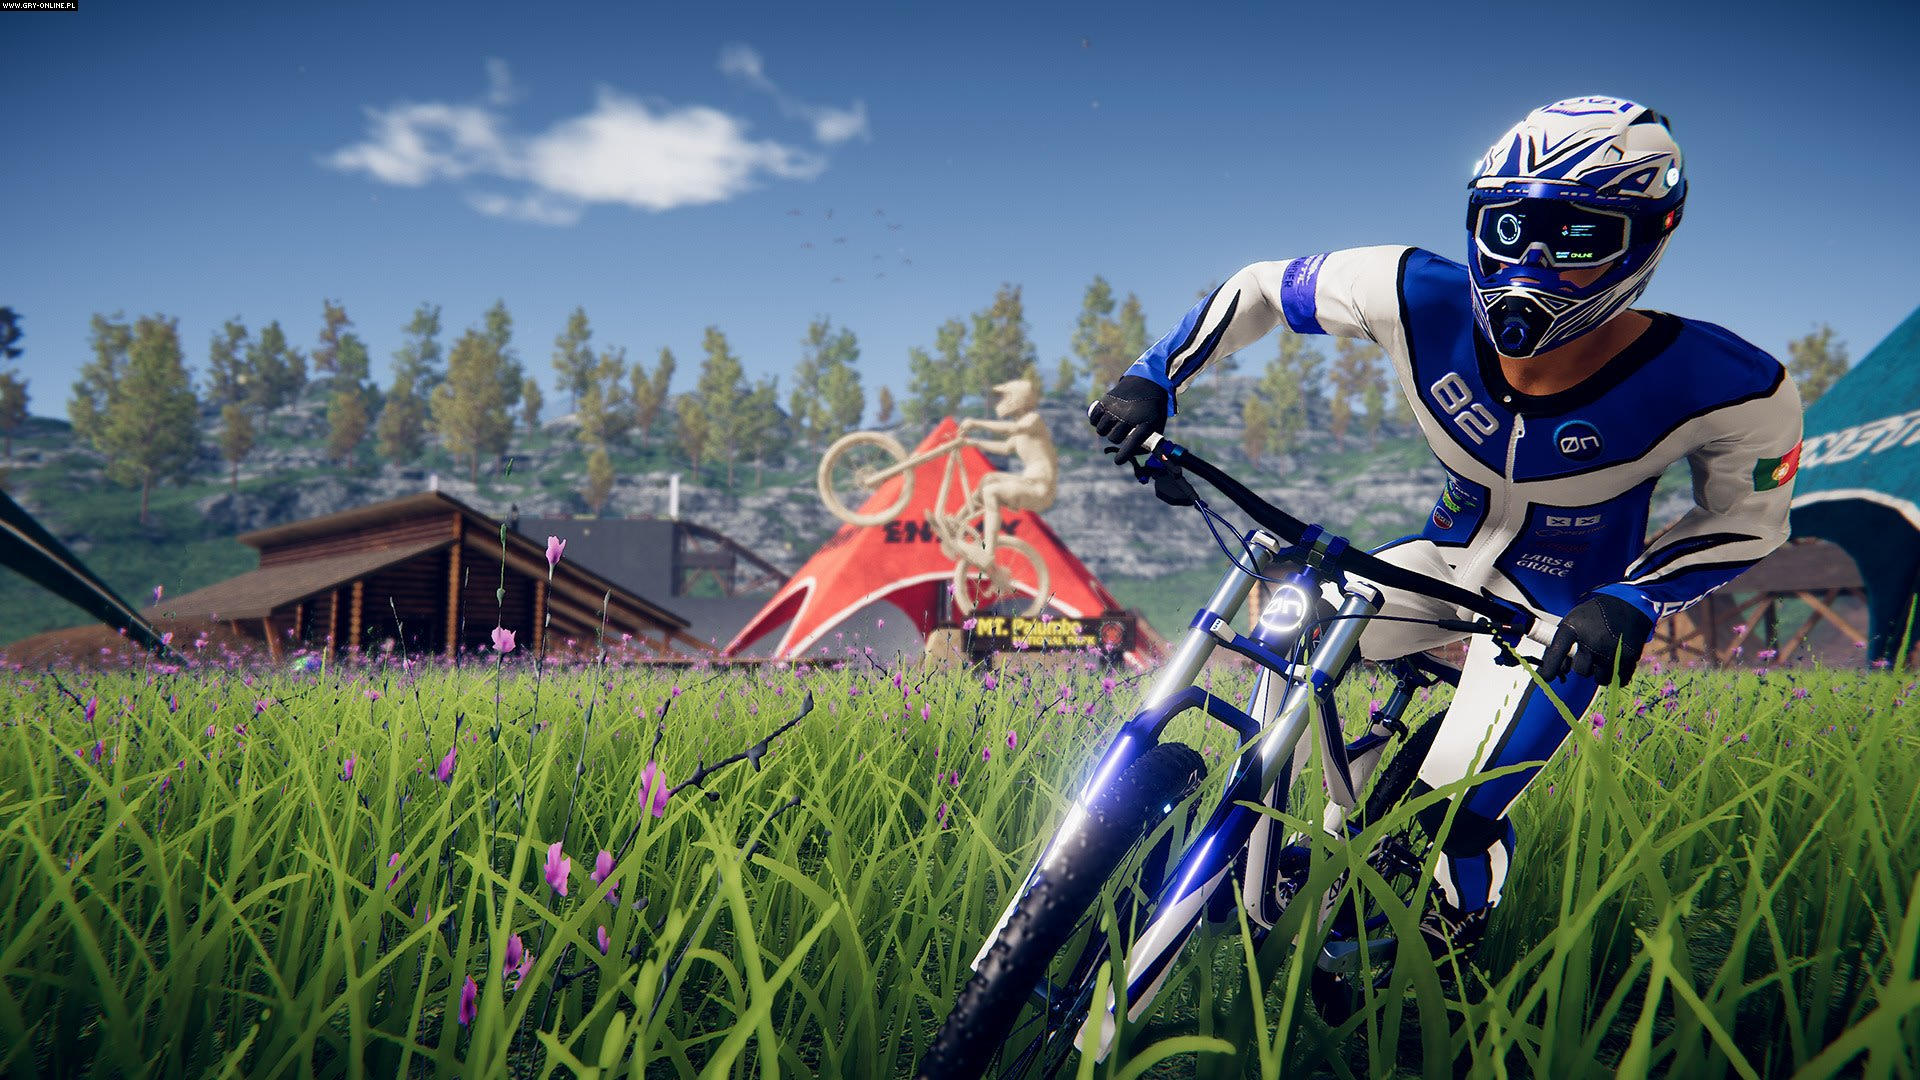 Descenders PC, PS4, XONE, Switch Games Image 4/23, RageSquid, No More Robots